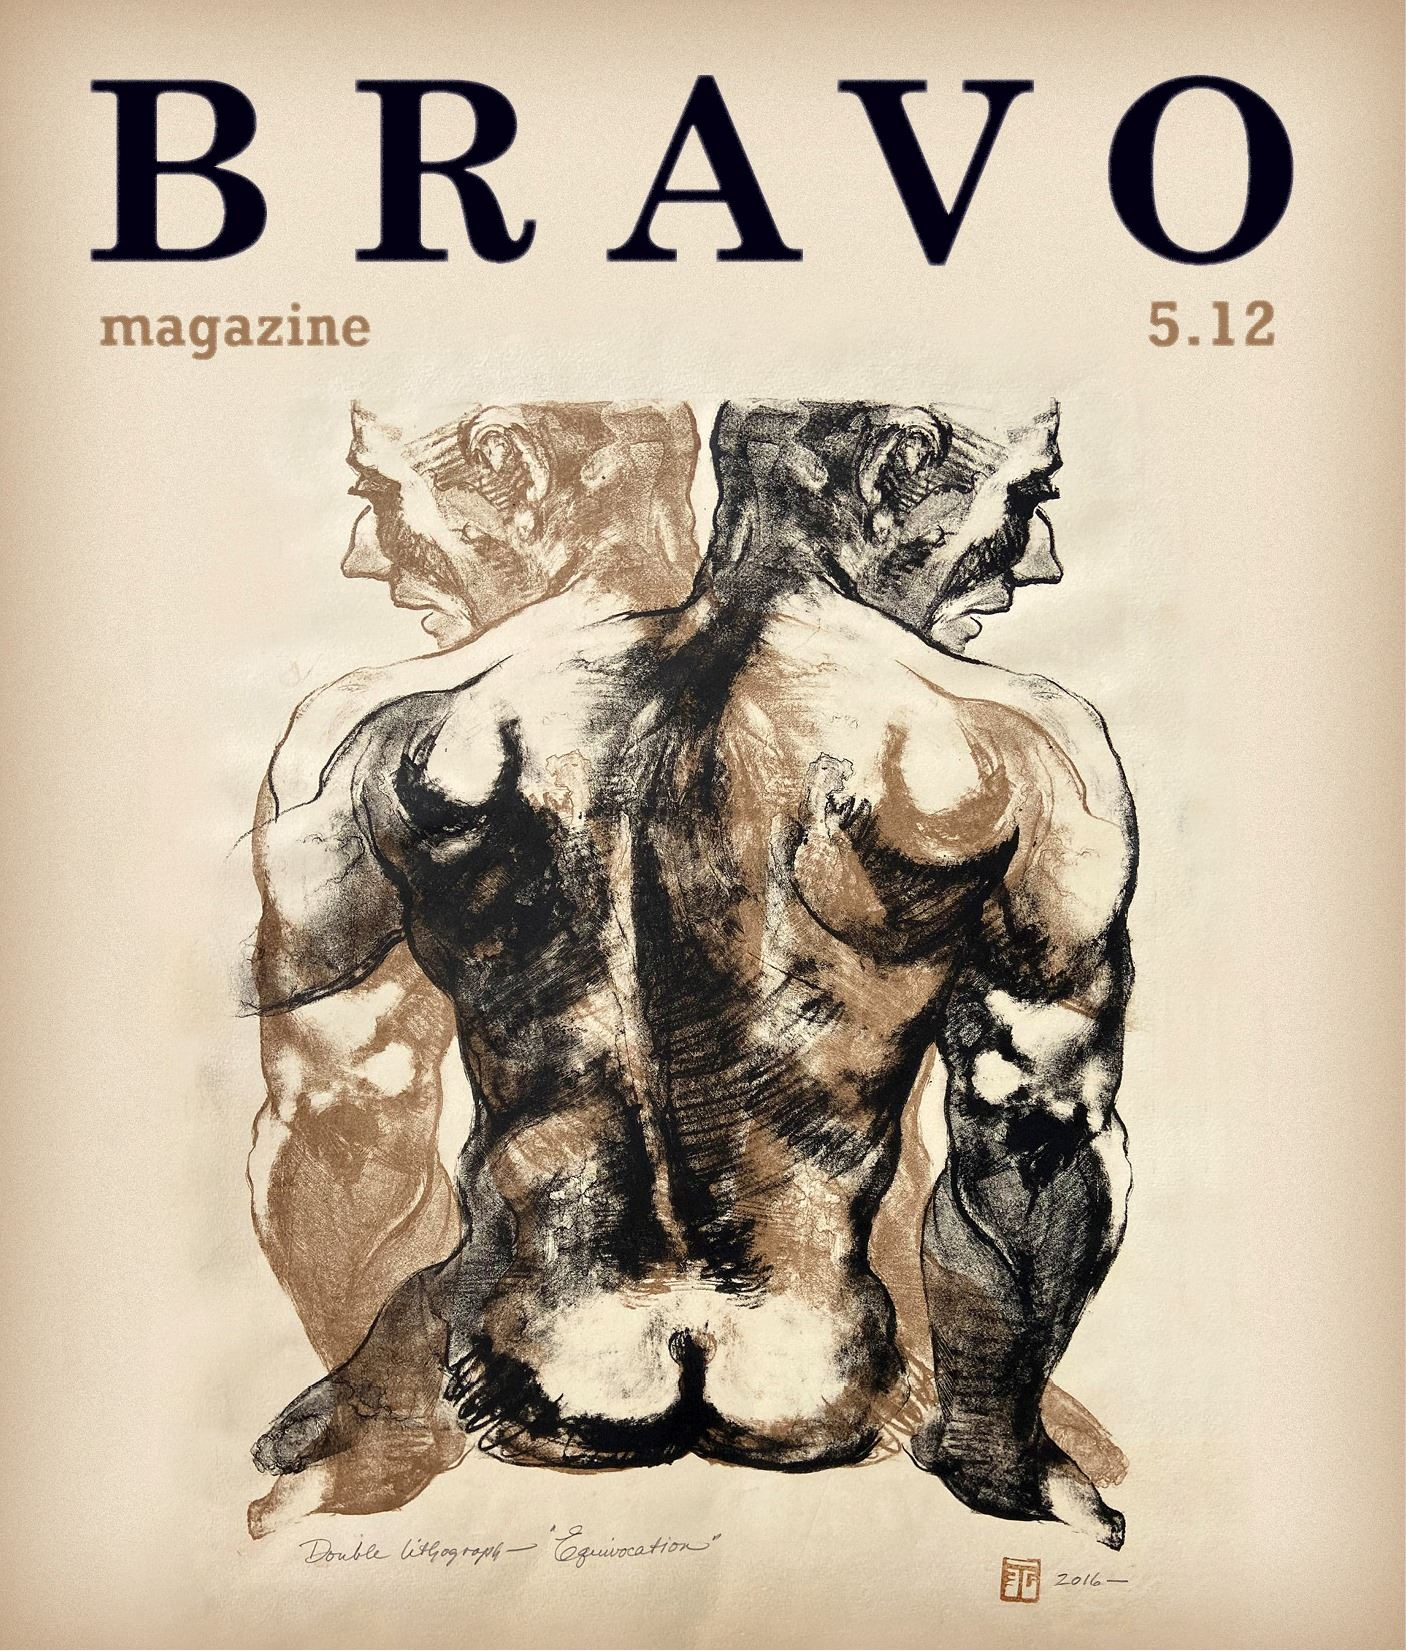 Bravo Magazine, December 2019 Cover. Drawing of a man's back in black, white, and tan.